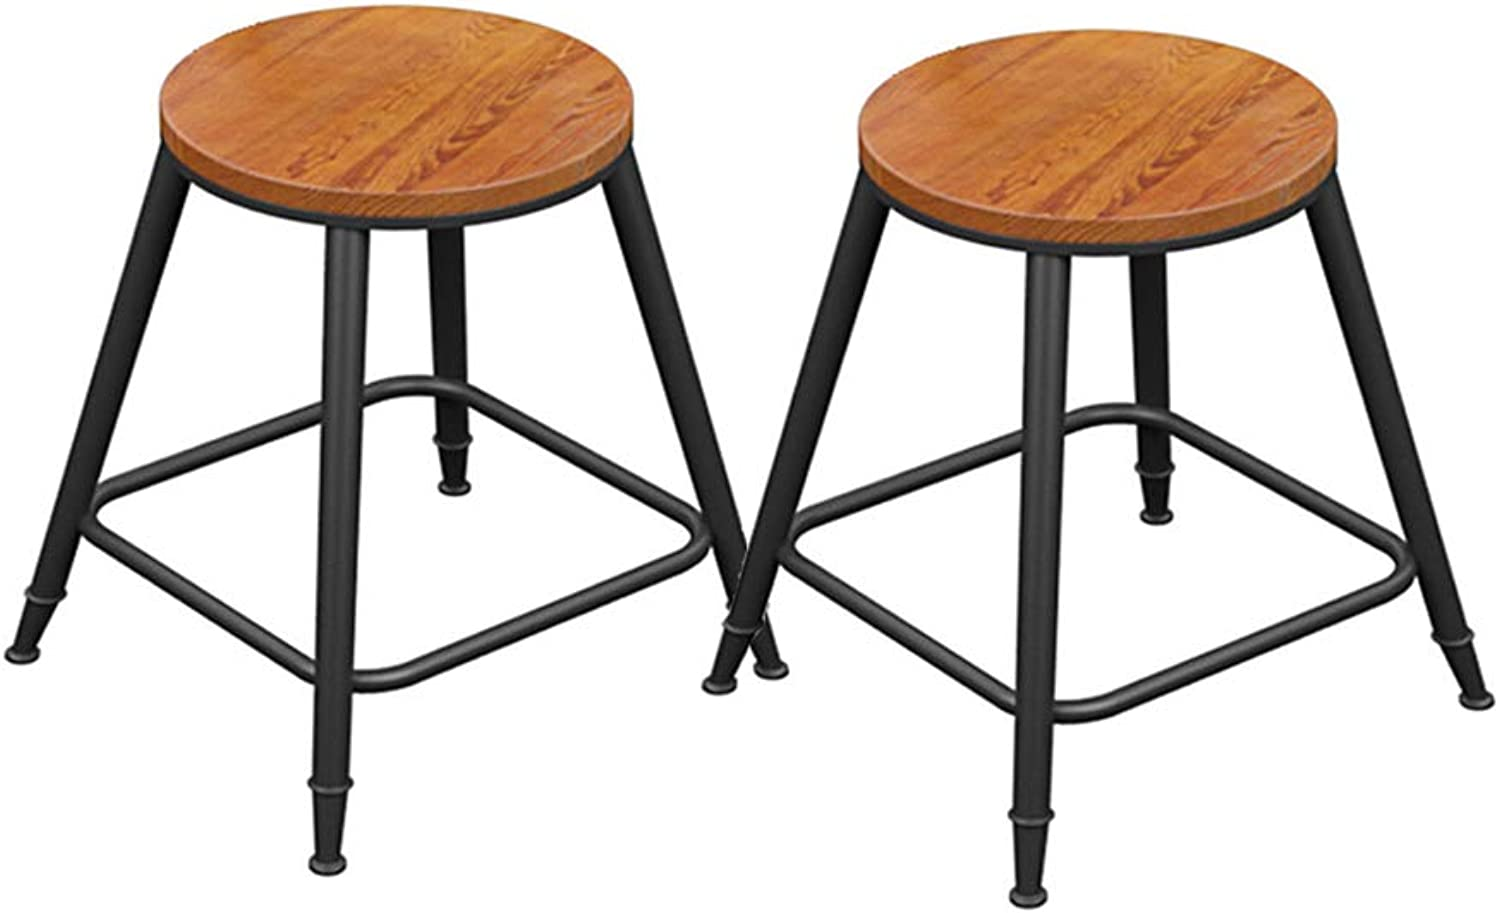 XJBD-Barstools 2 Pcs Bar Chair Kitchen Pub Stools Counter Kitchen Breakfast Dining Chair Counter Black Metal Frame Solid Wood Seat (Size   45cm)